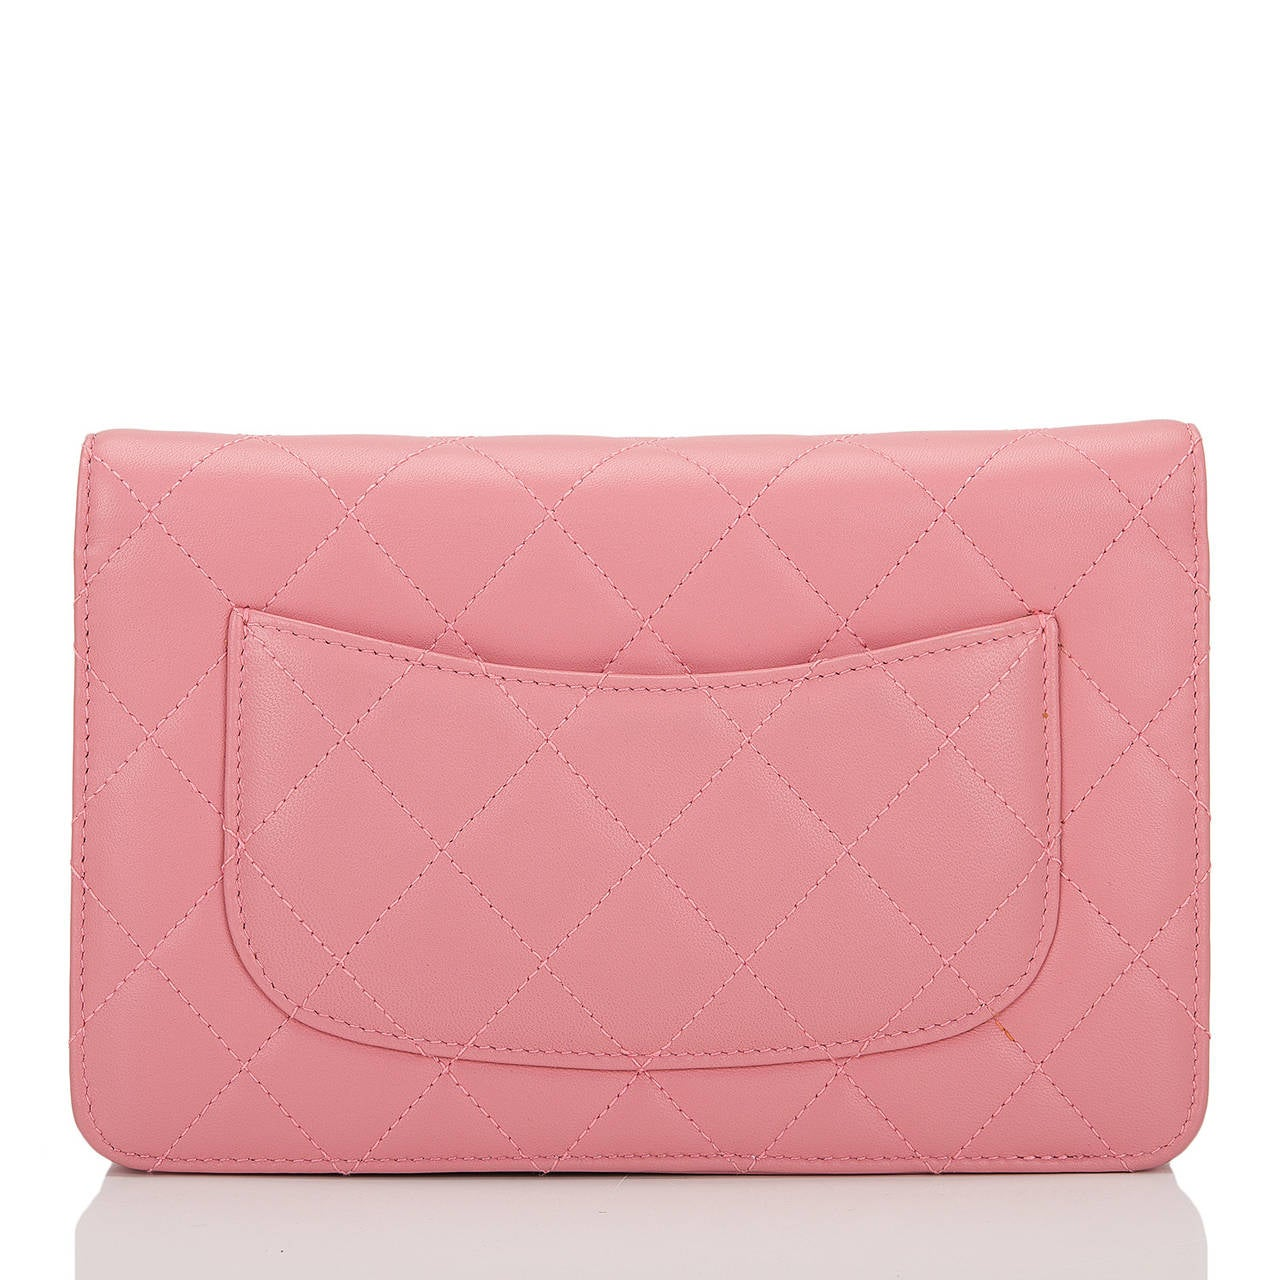 Chanel Blush Pink Lambskin Classic Wallet On Chain (WOC) In New Never_worn Condition For Sale In New York, NY